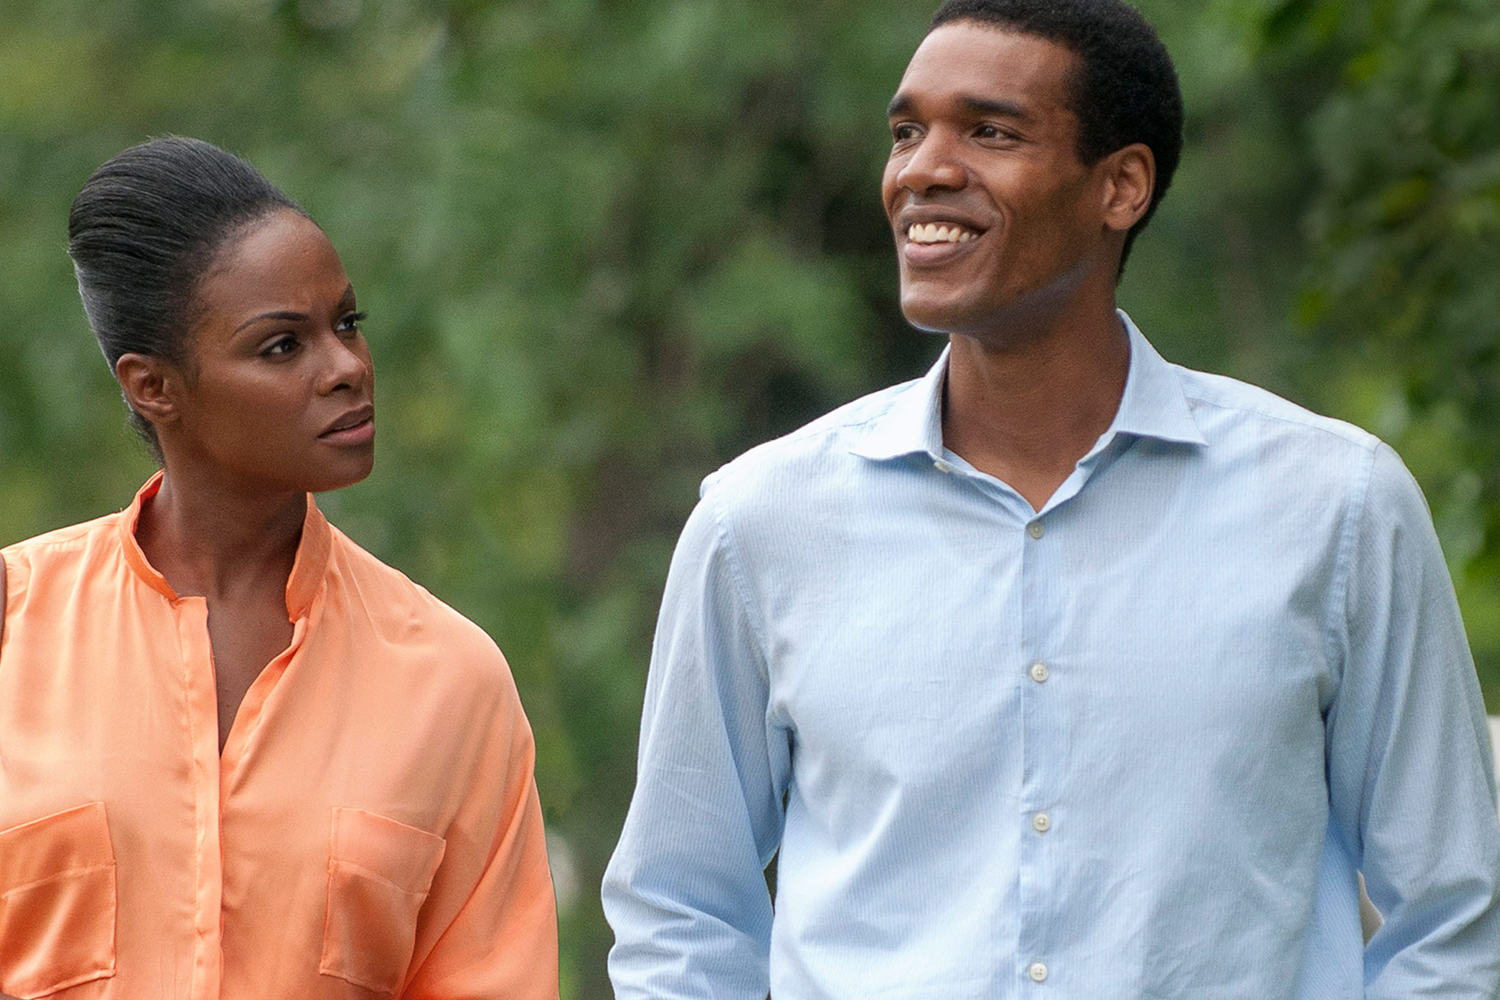 Obama First Date Movie Photos Show Young Barack And Michelle; Do The ...